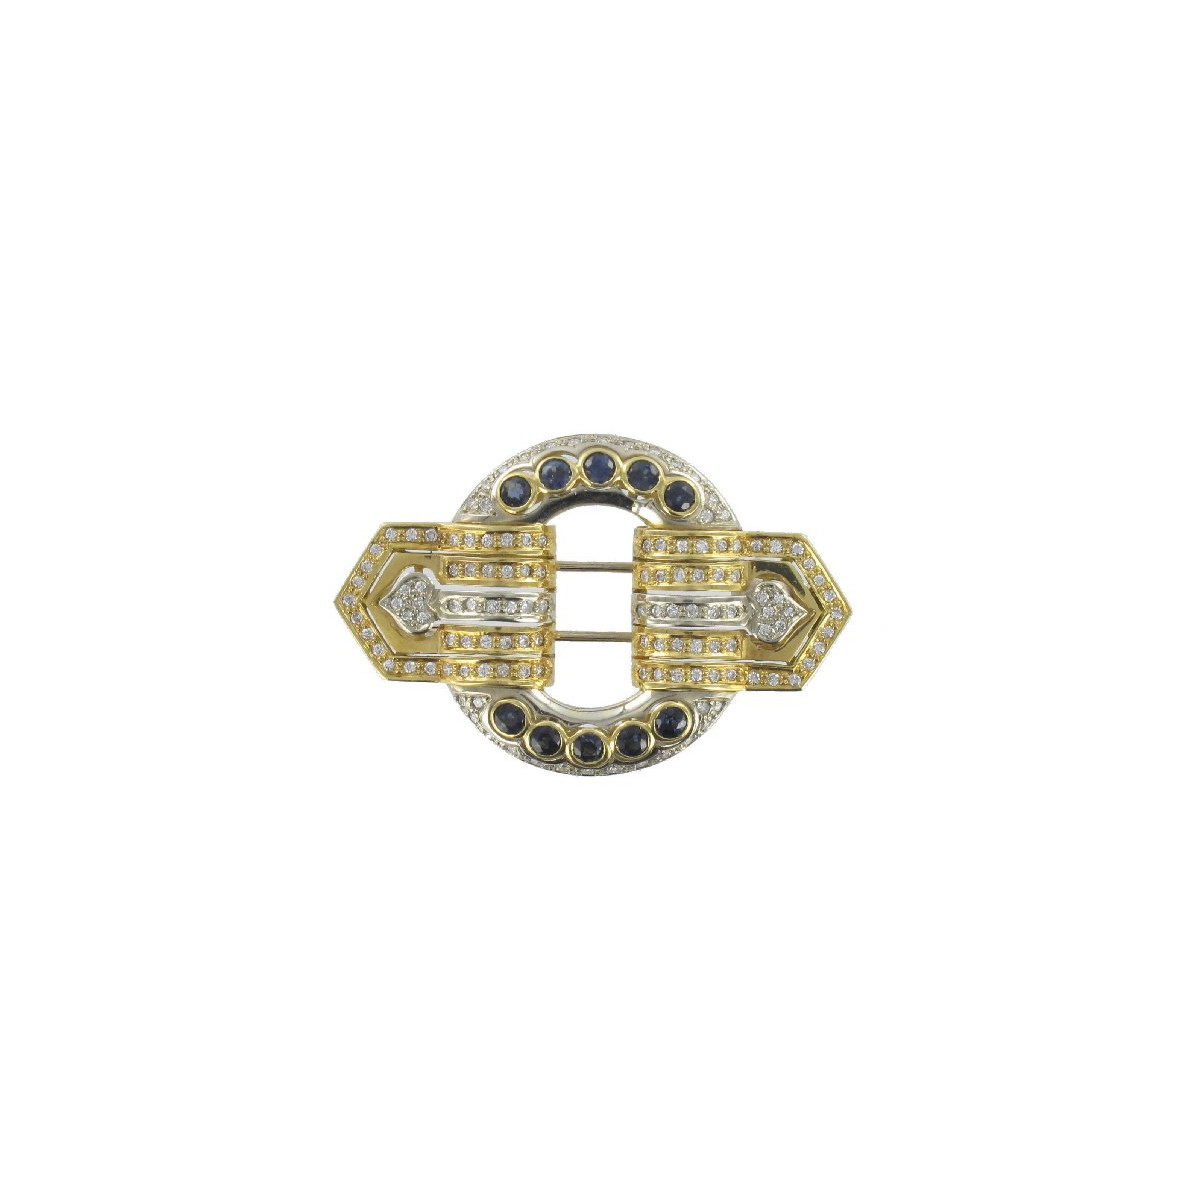 GOLD DIAMOND AND SAPPHIRE BROOCH